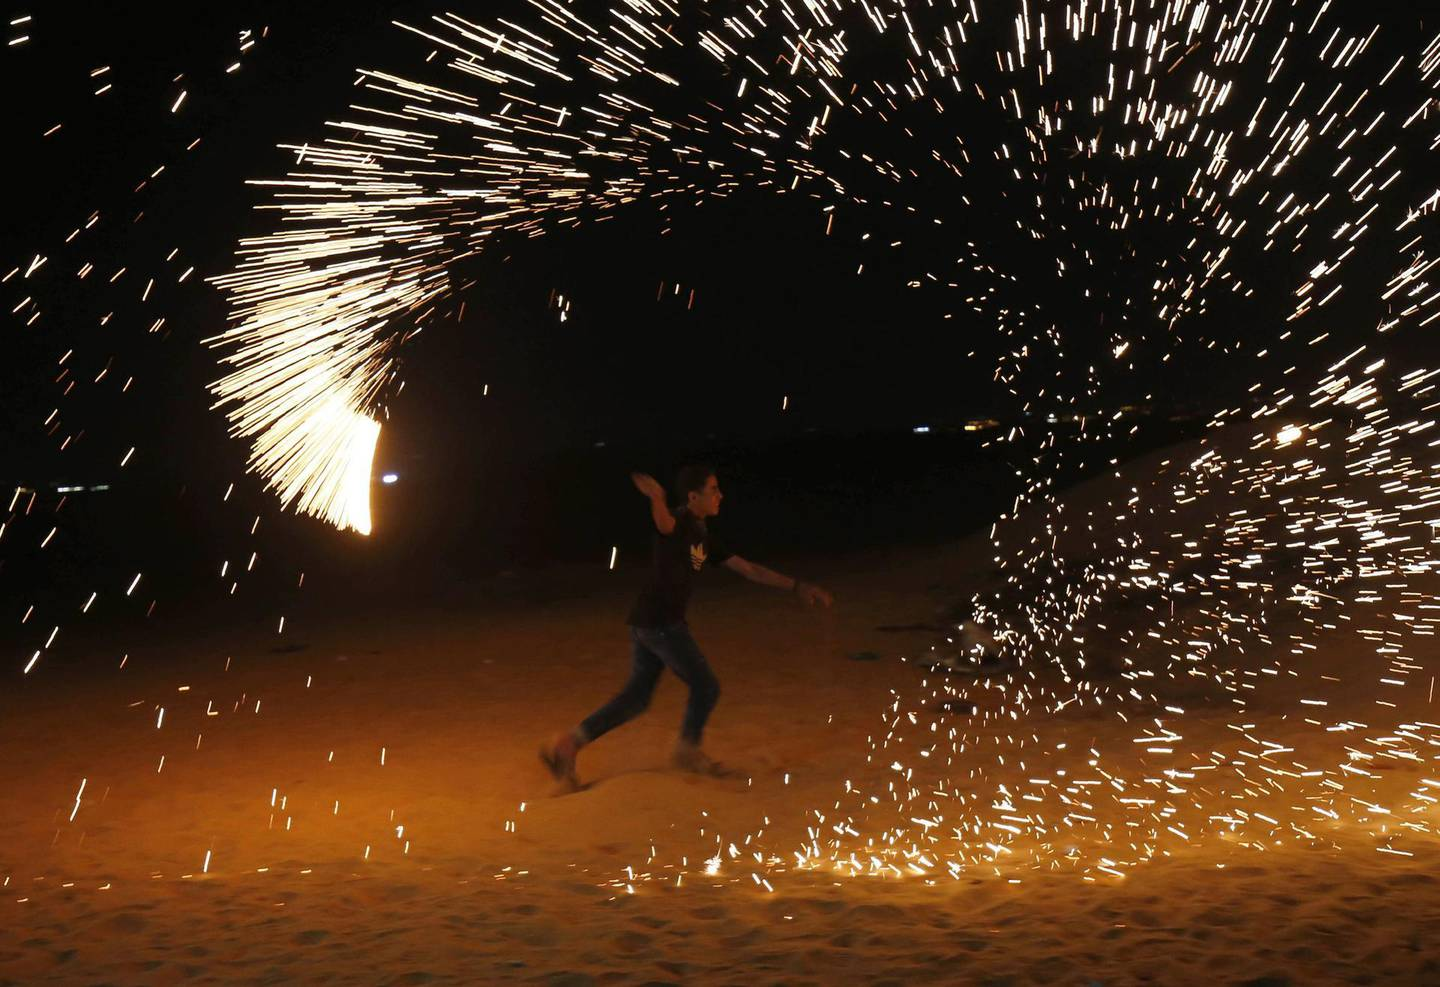 """A Palestinian protester from a group calling themselves the """"night confusion units"""" waves a sparkler near the Gaza-Israel border east of Rafah in the southern Gaza Strip, on September 26, 2018. The border protests since March 30 have been labelled the """"Great March of Return"""" because they call for Palestinian refugees to return to their former homes inside what is now Israel. Hundreds of thousands of dollars in damage were caused to Israeli land -- including incinerated crops -- by the kites and balloons, Israeli authorities said. / AFP / SAID KHATIB"""